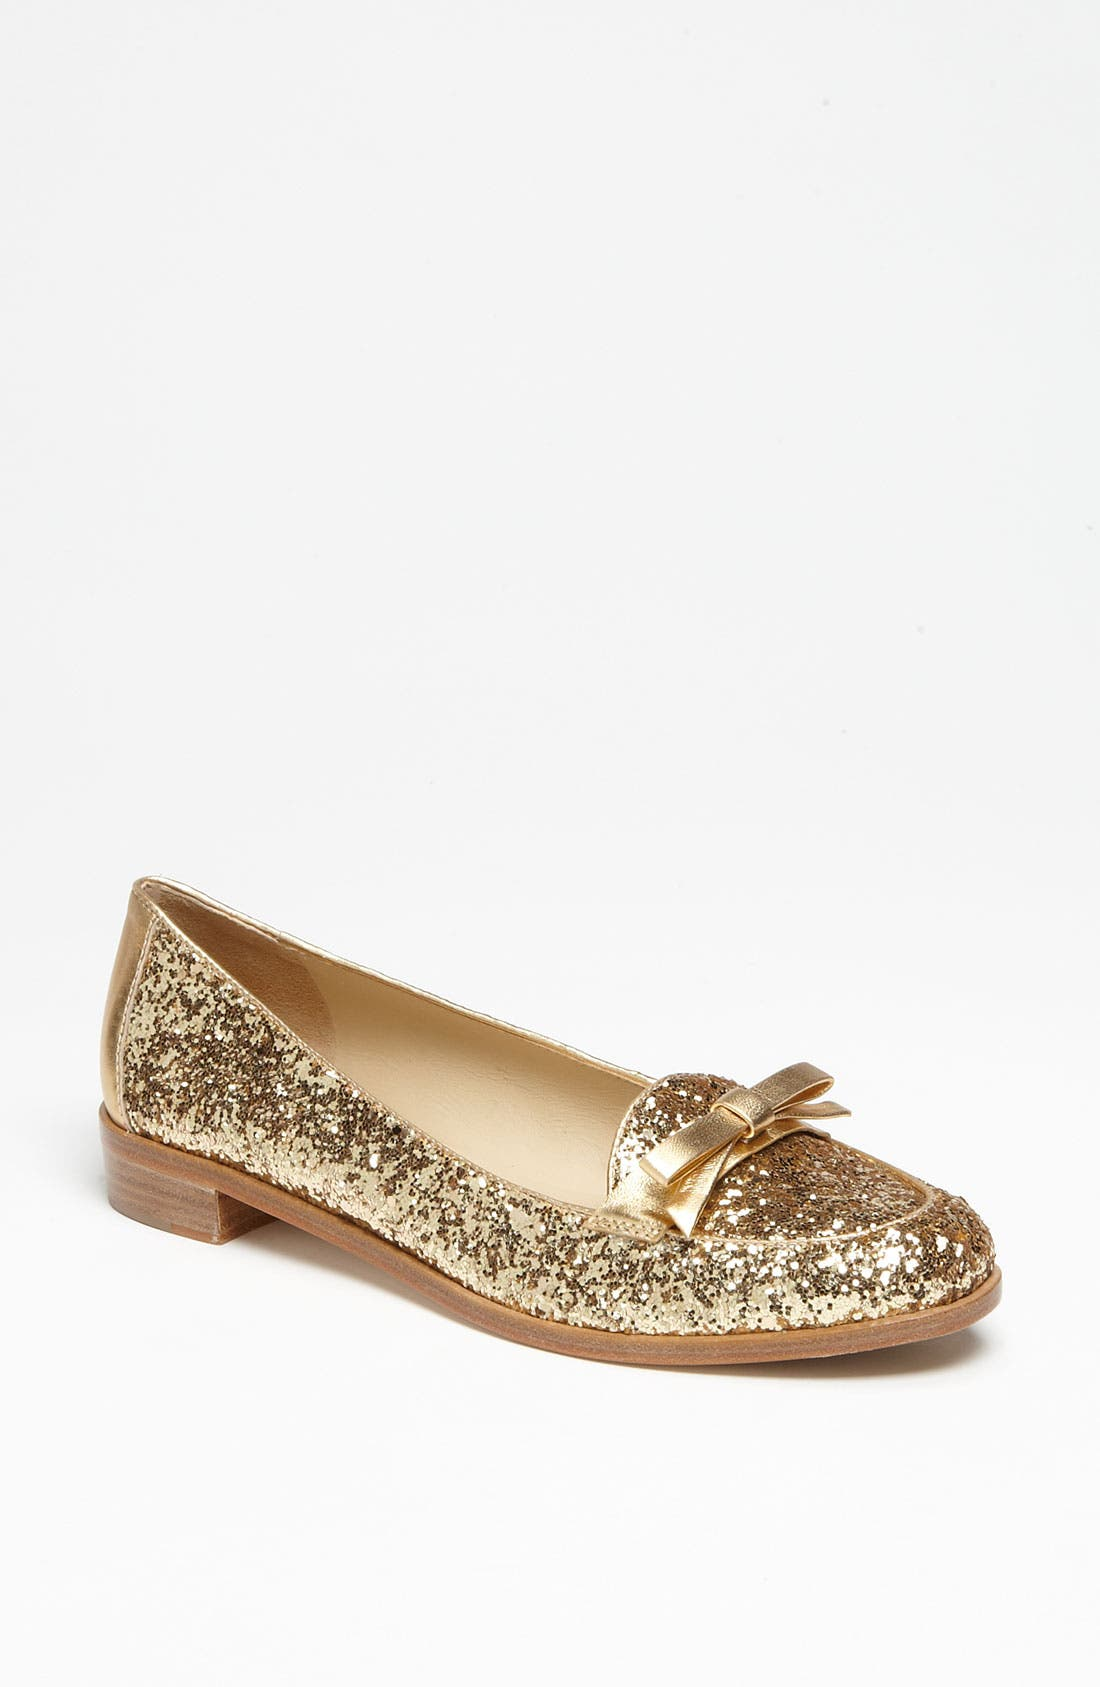 Alternate Image 1 Selected - kate spade new york 'cora' flat